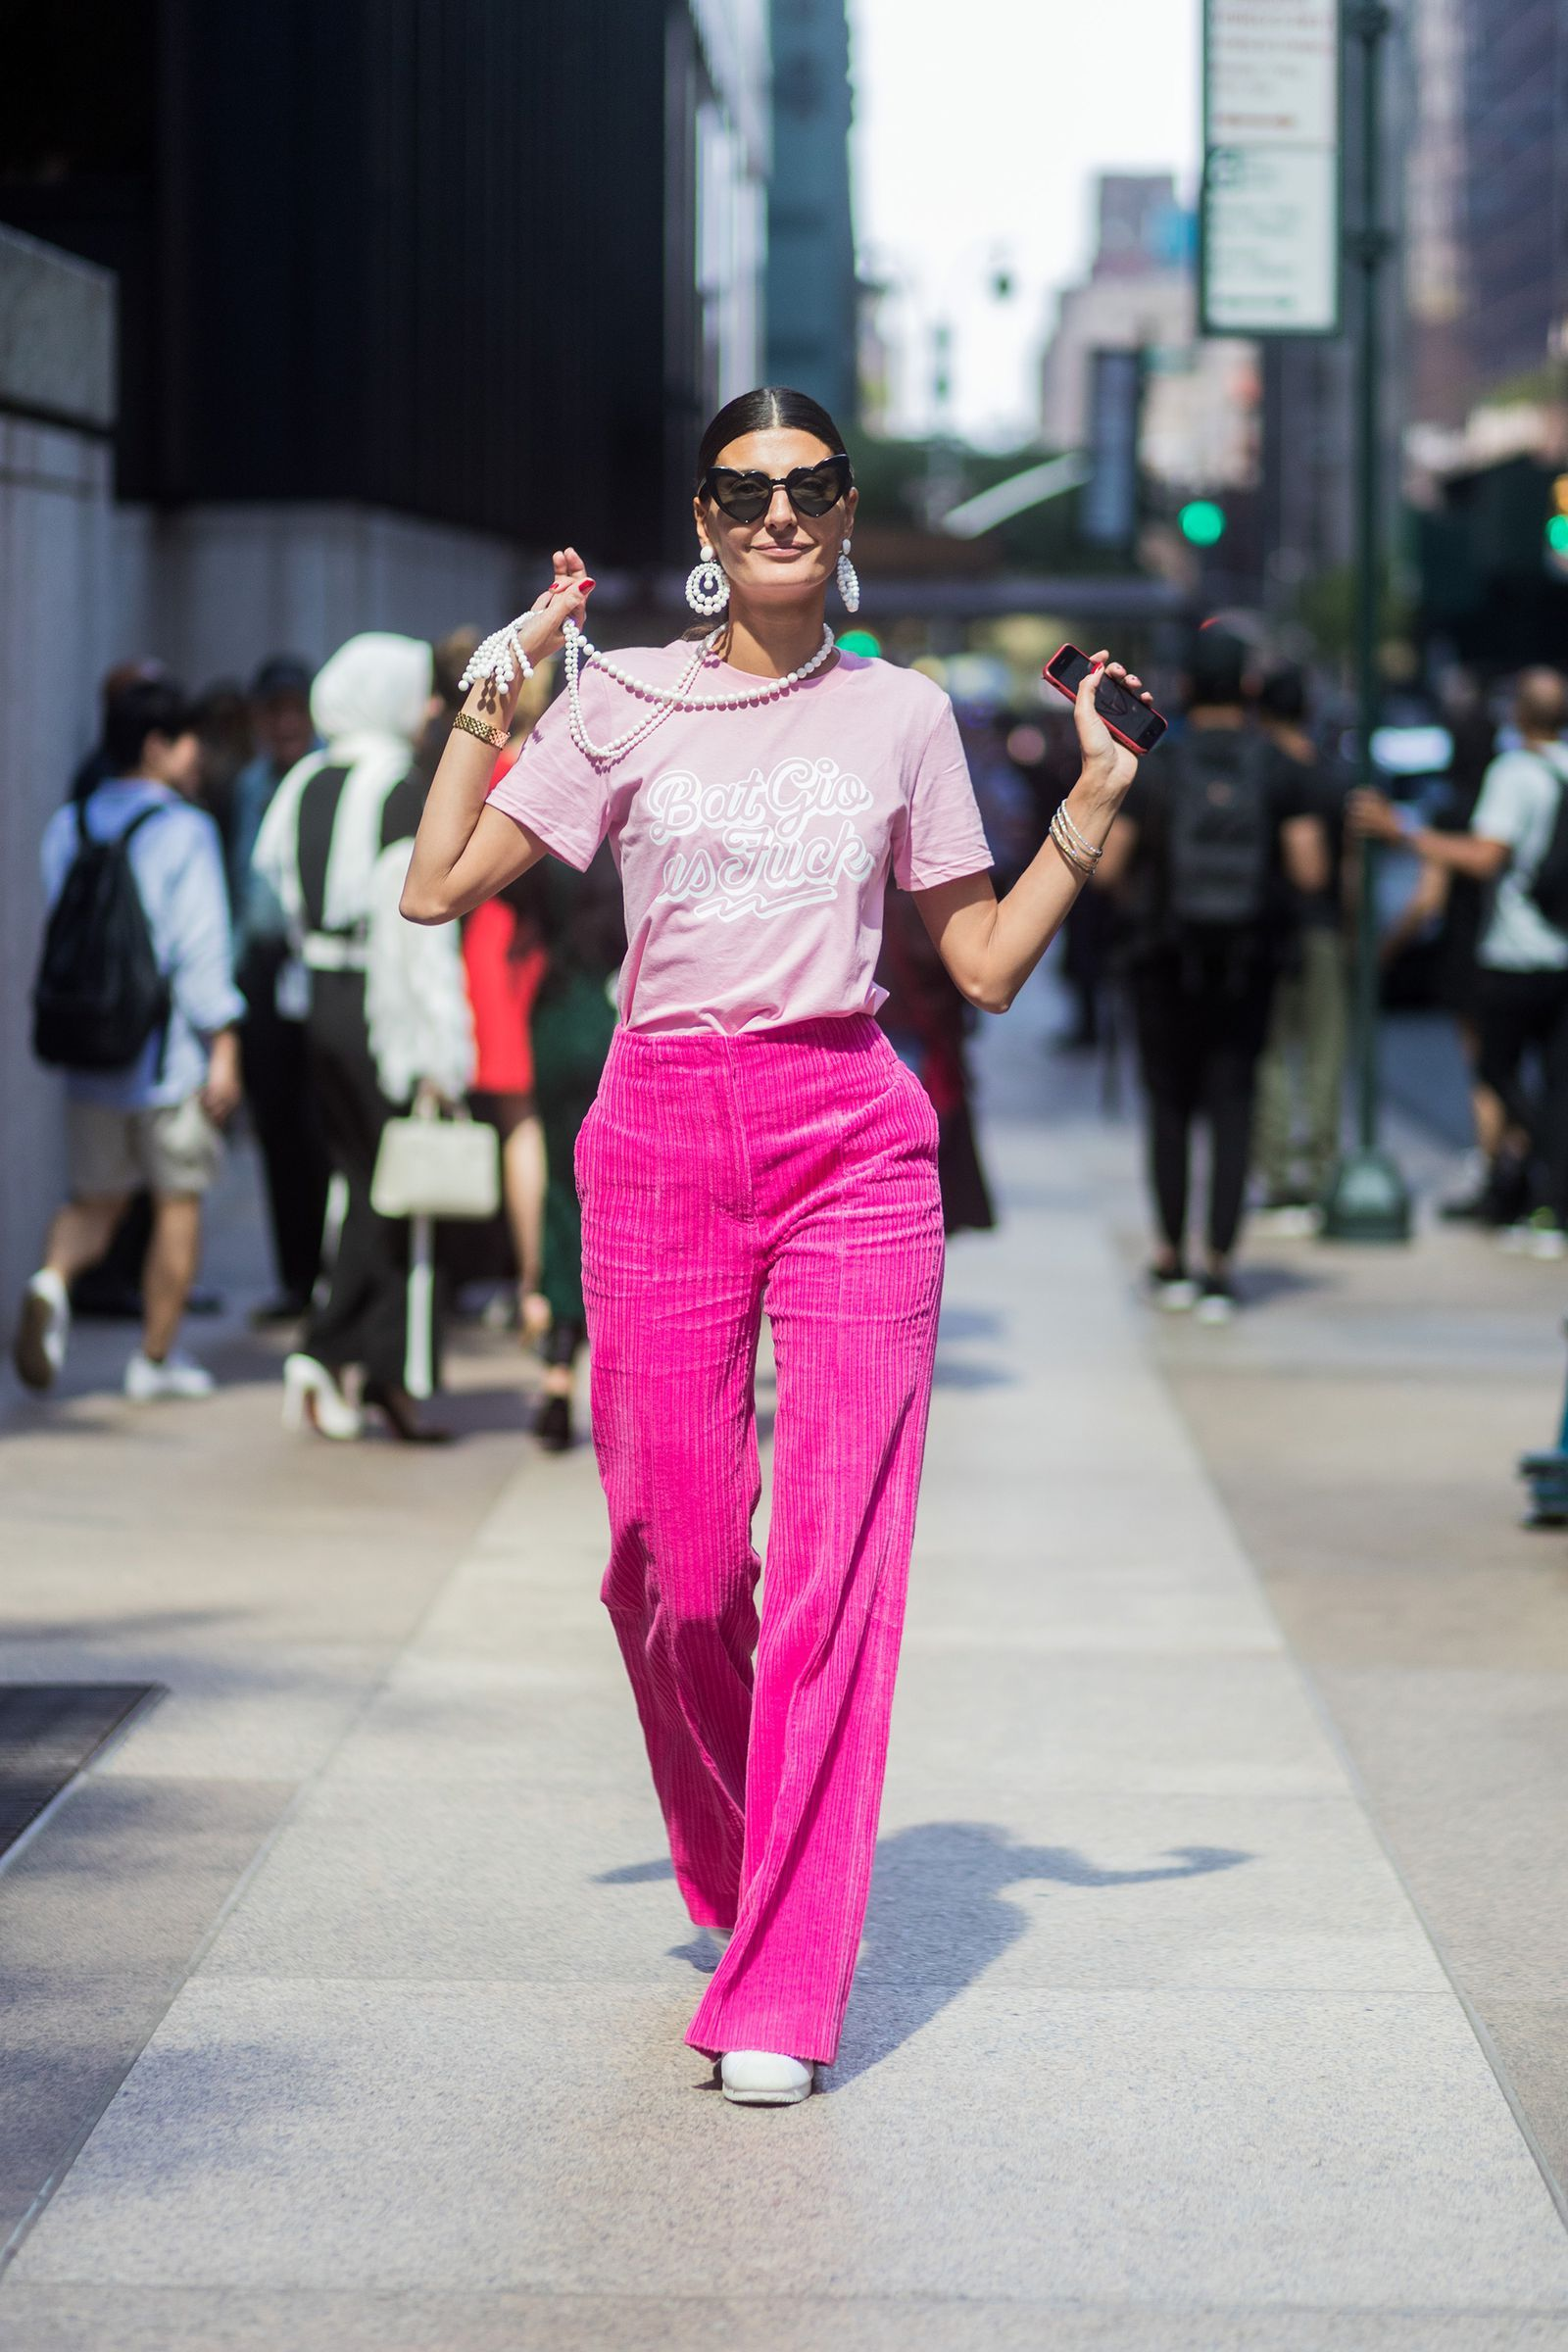 b8a1fb342c 10 pictures that prove Giovanna Battaglia is the queen of street ...